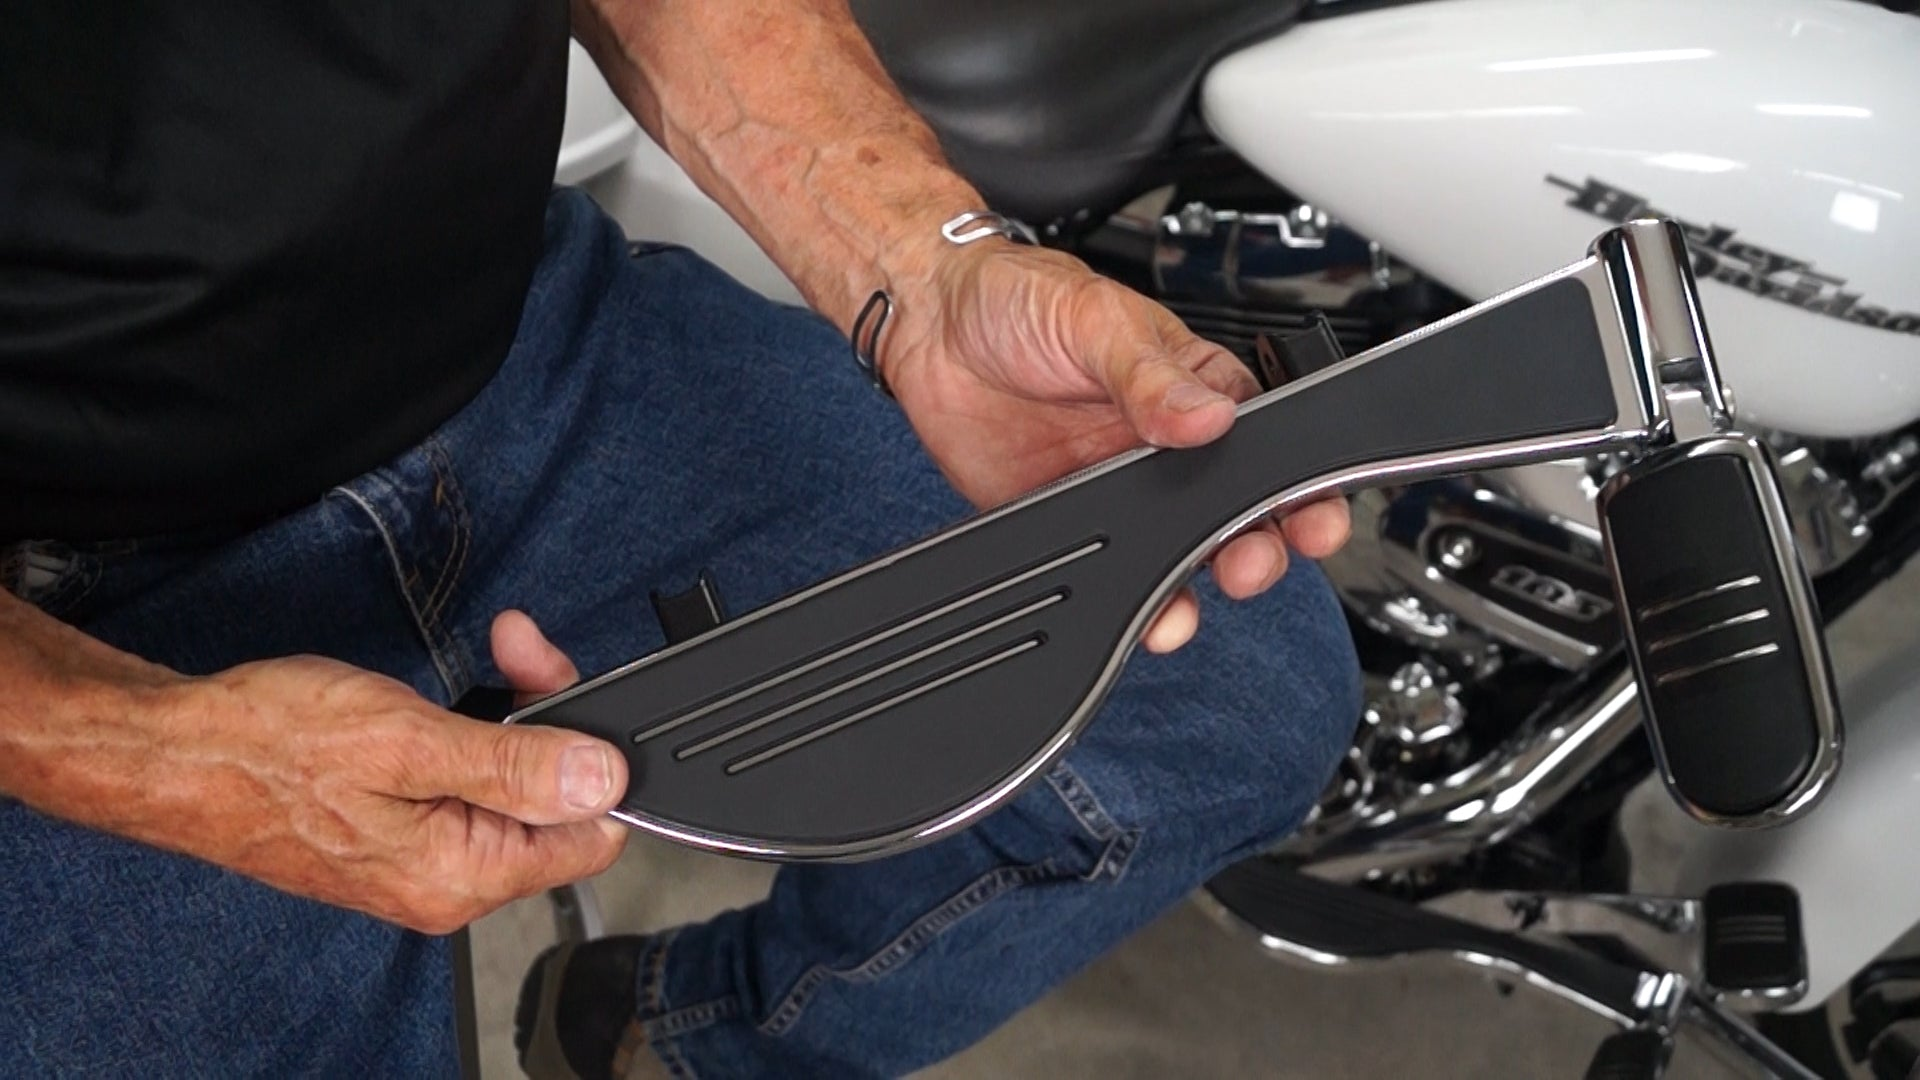 Michael Anthony holds Pegboard Motorcycle Floorboard